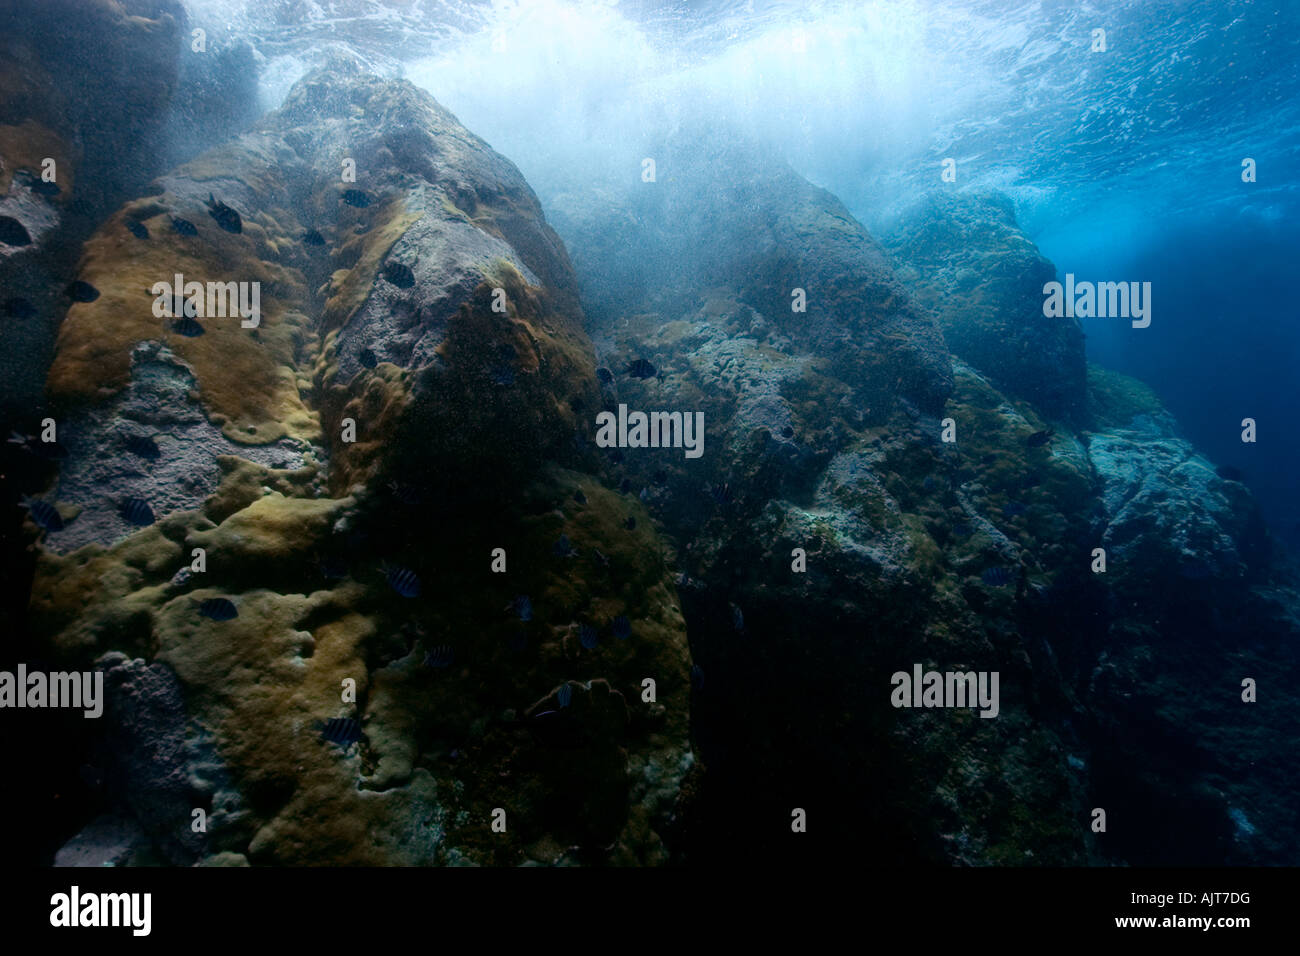 Waves breaking against rocky underwater substrate St Peter and St Paul s rocks Brazil Atlantic Ocean - Stock Image